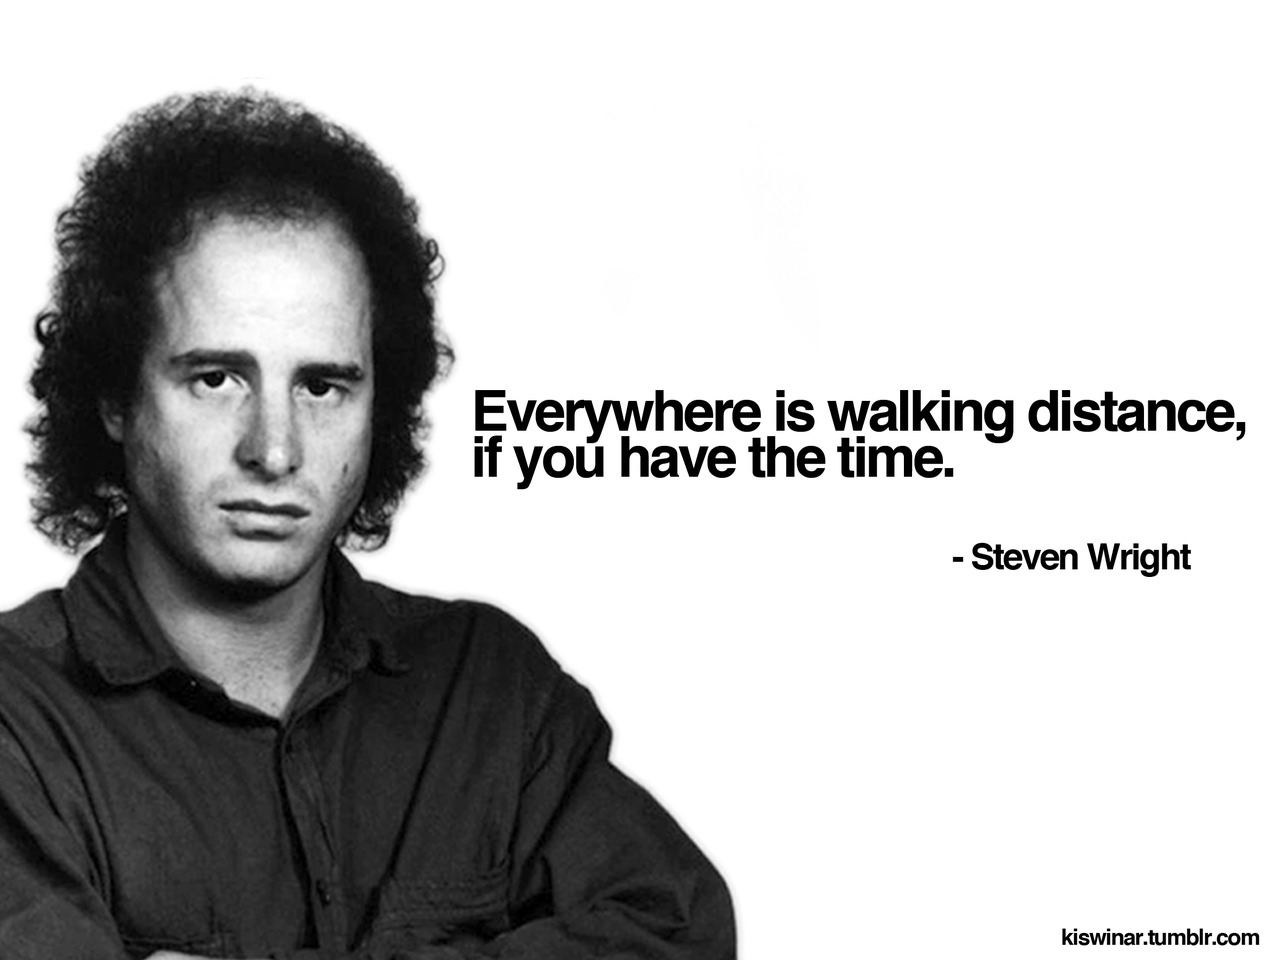 Best Steven Wright Quotes Quote of Steven Wright | QuoteSaga Best Steven Wright Quotes